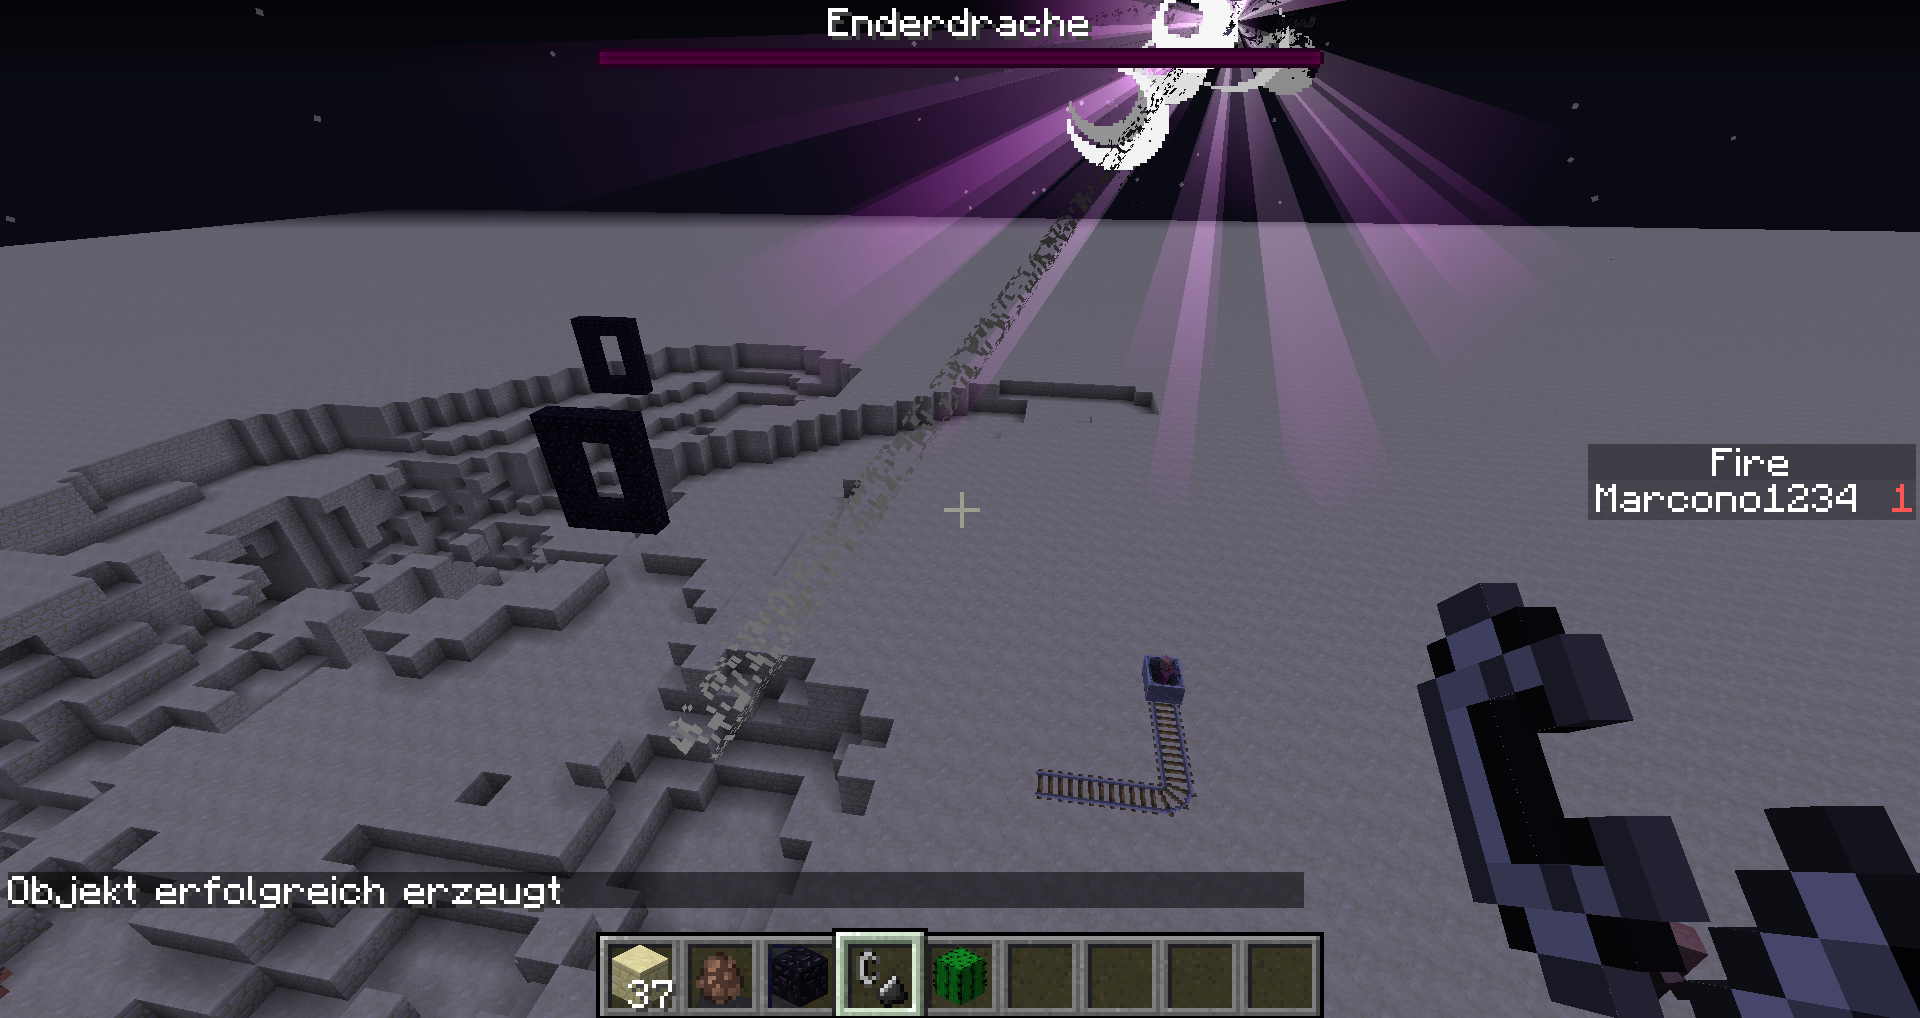 MC-64382] Dying Ender Dragon healed by a destroyed Ender Crystal - Jira